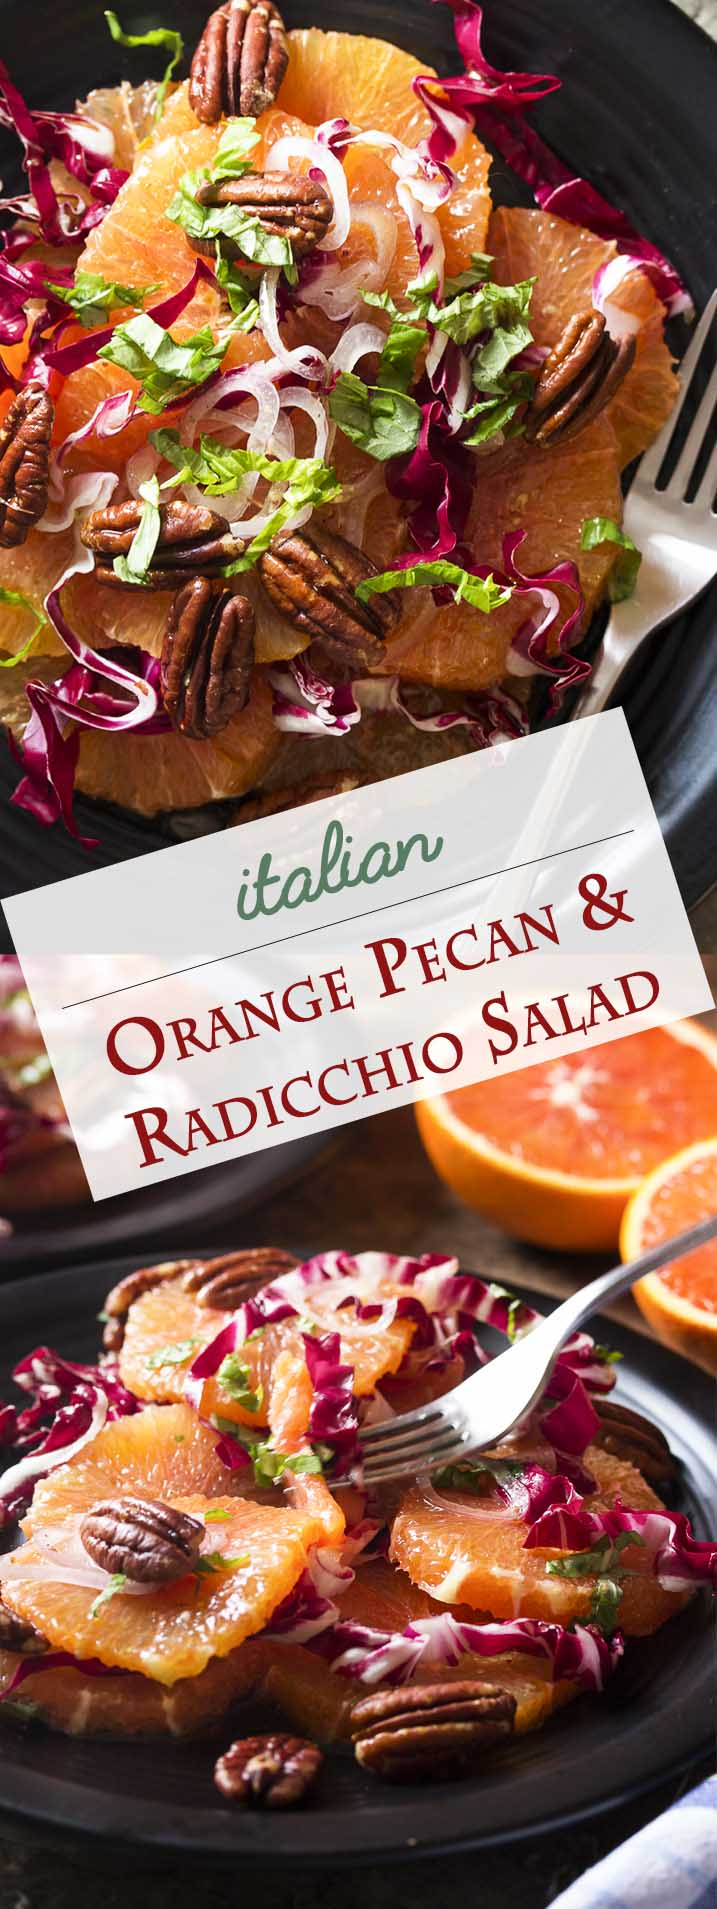 Looking for a healthy and fresh winter salad? Try an Italian orange salad full of sliced cara cara oranges, bitter radicchio, and toasted pecans all tossed with a lemony honey mustard dressing. | justalittlebitofbacon.com #glutenfree #italianfood #italianrecipes #salad #easyrecipe